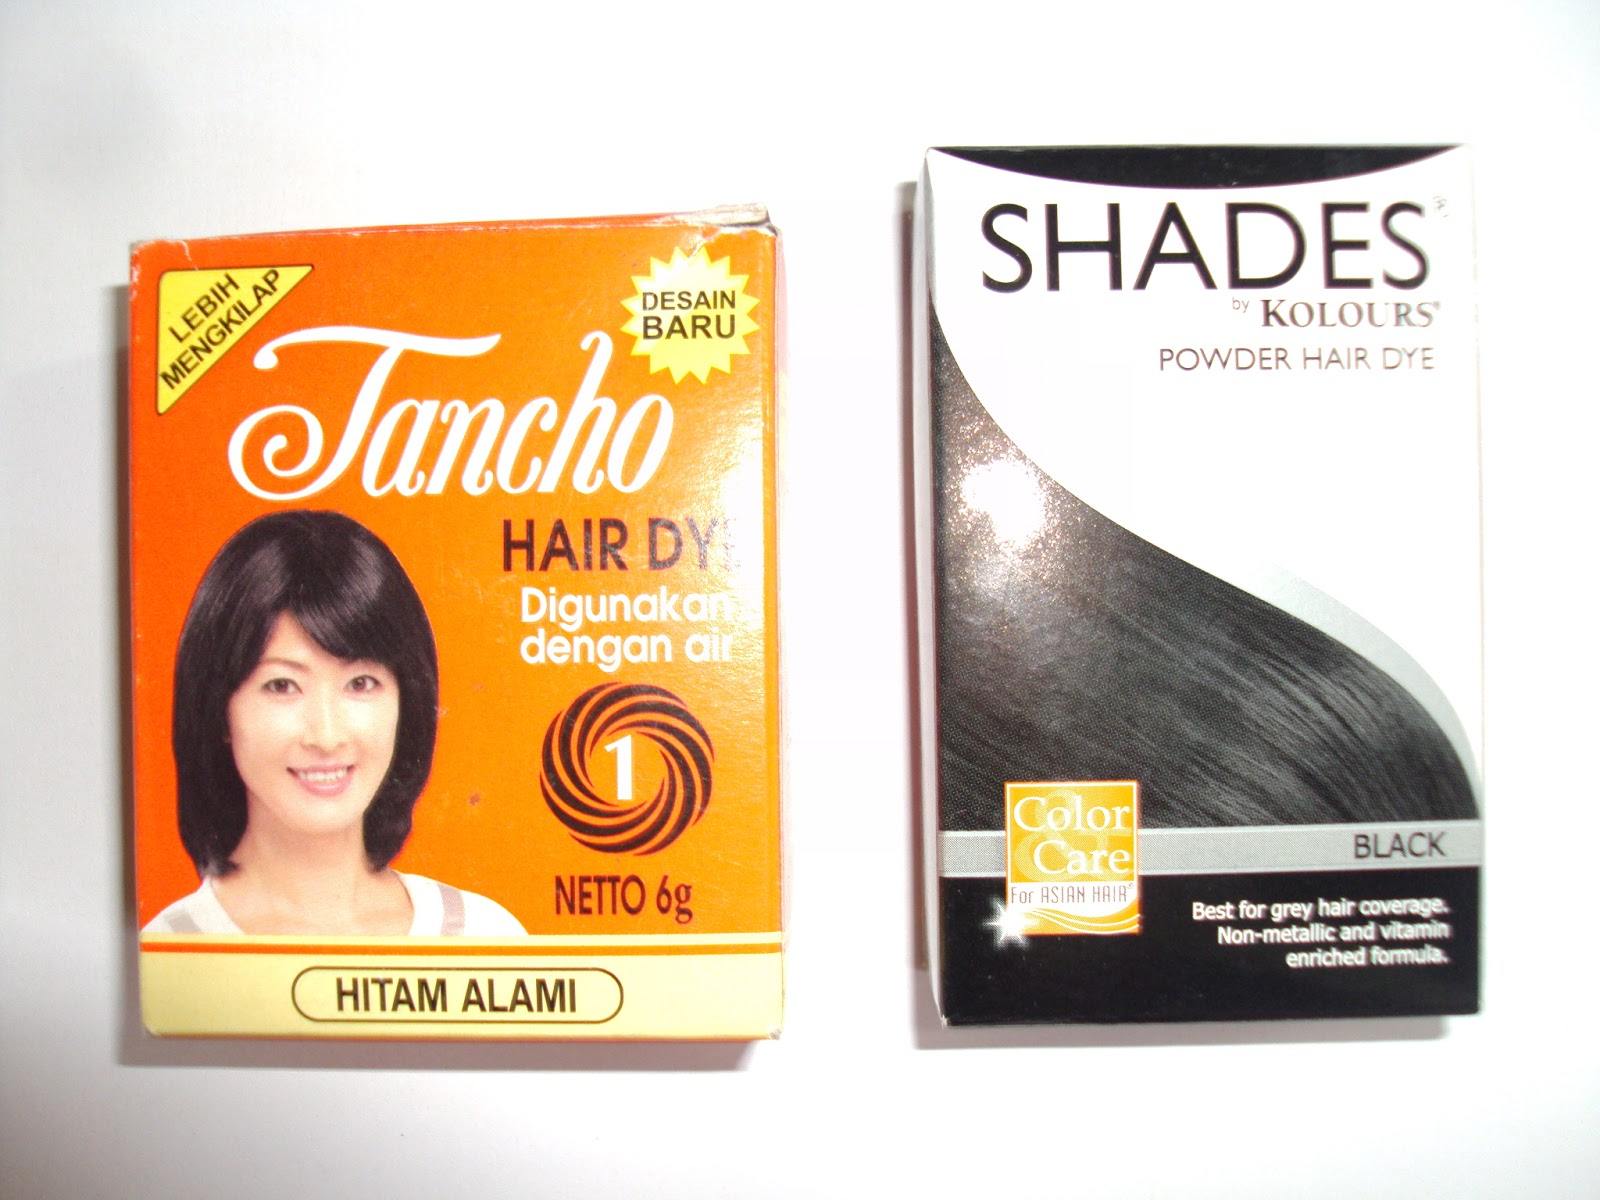 Women Beware Ecowaste Coalition Finds Banned Hair Dye Chemical In